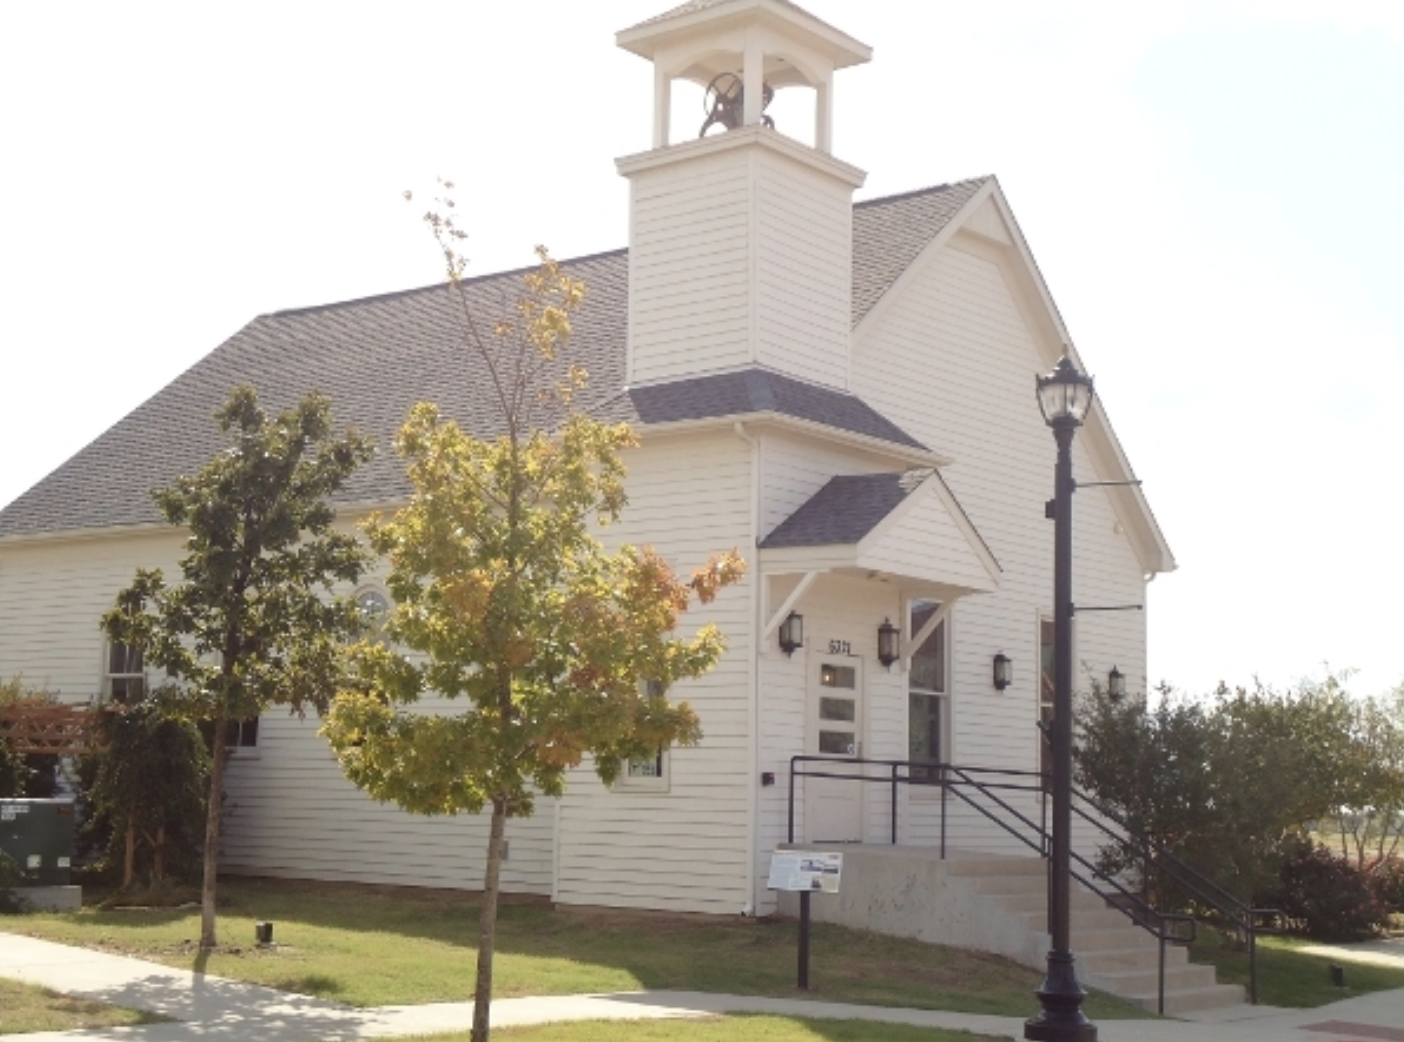 This is the Lebanon Chapel/Church that was donated to the city of Frisco and is used for special events. This is after renovations to the original structure.